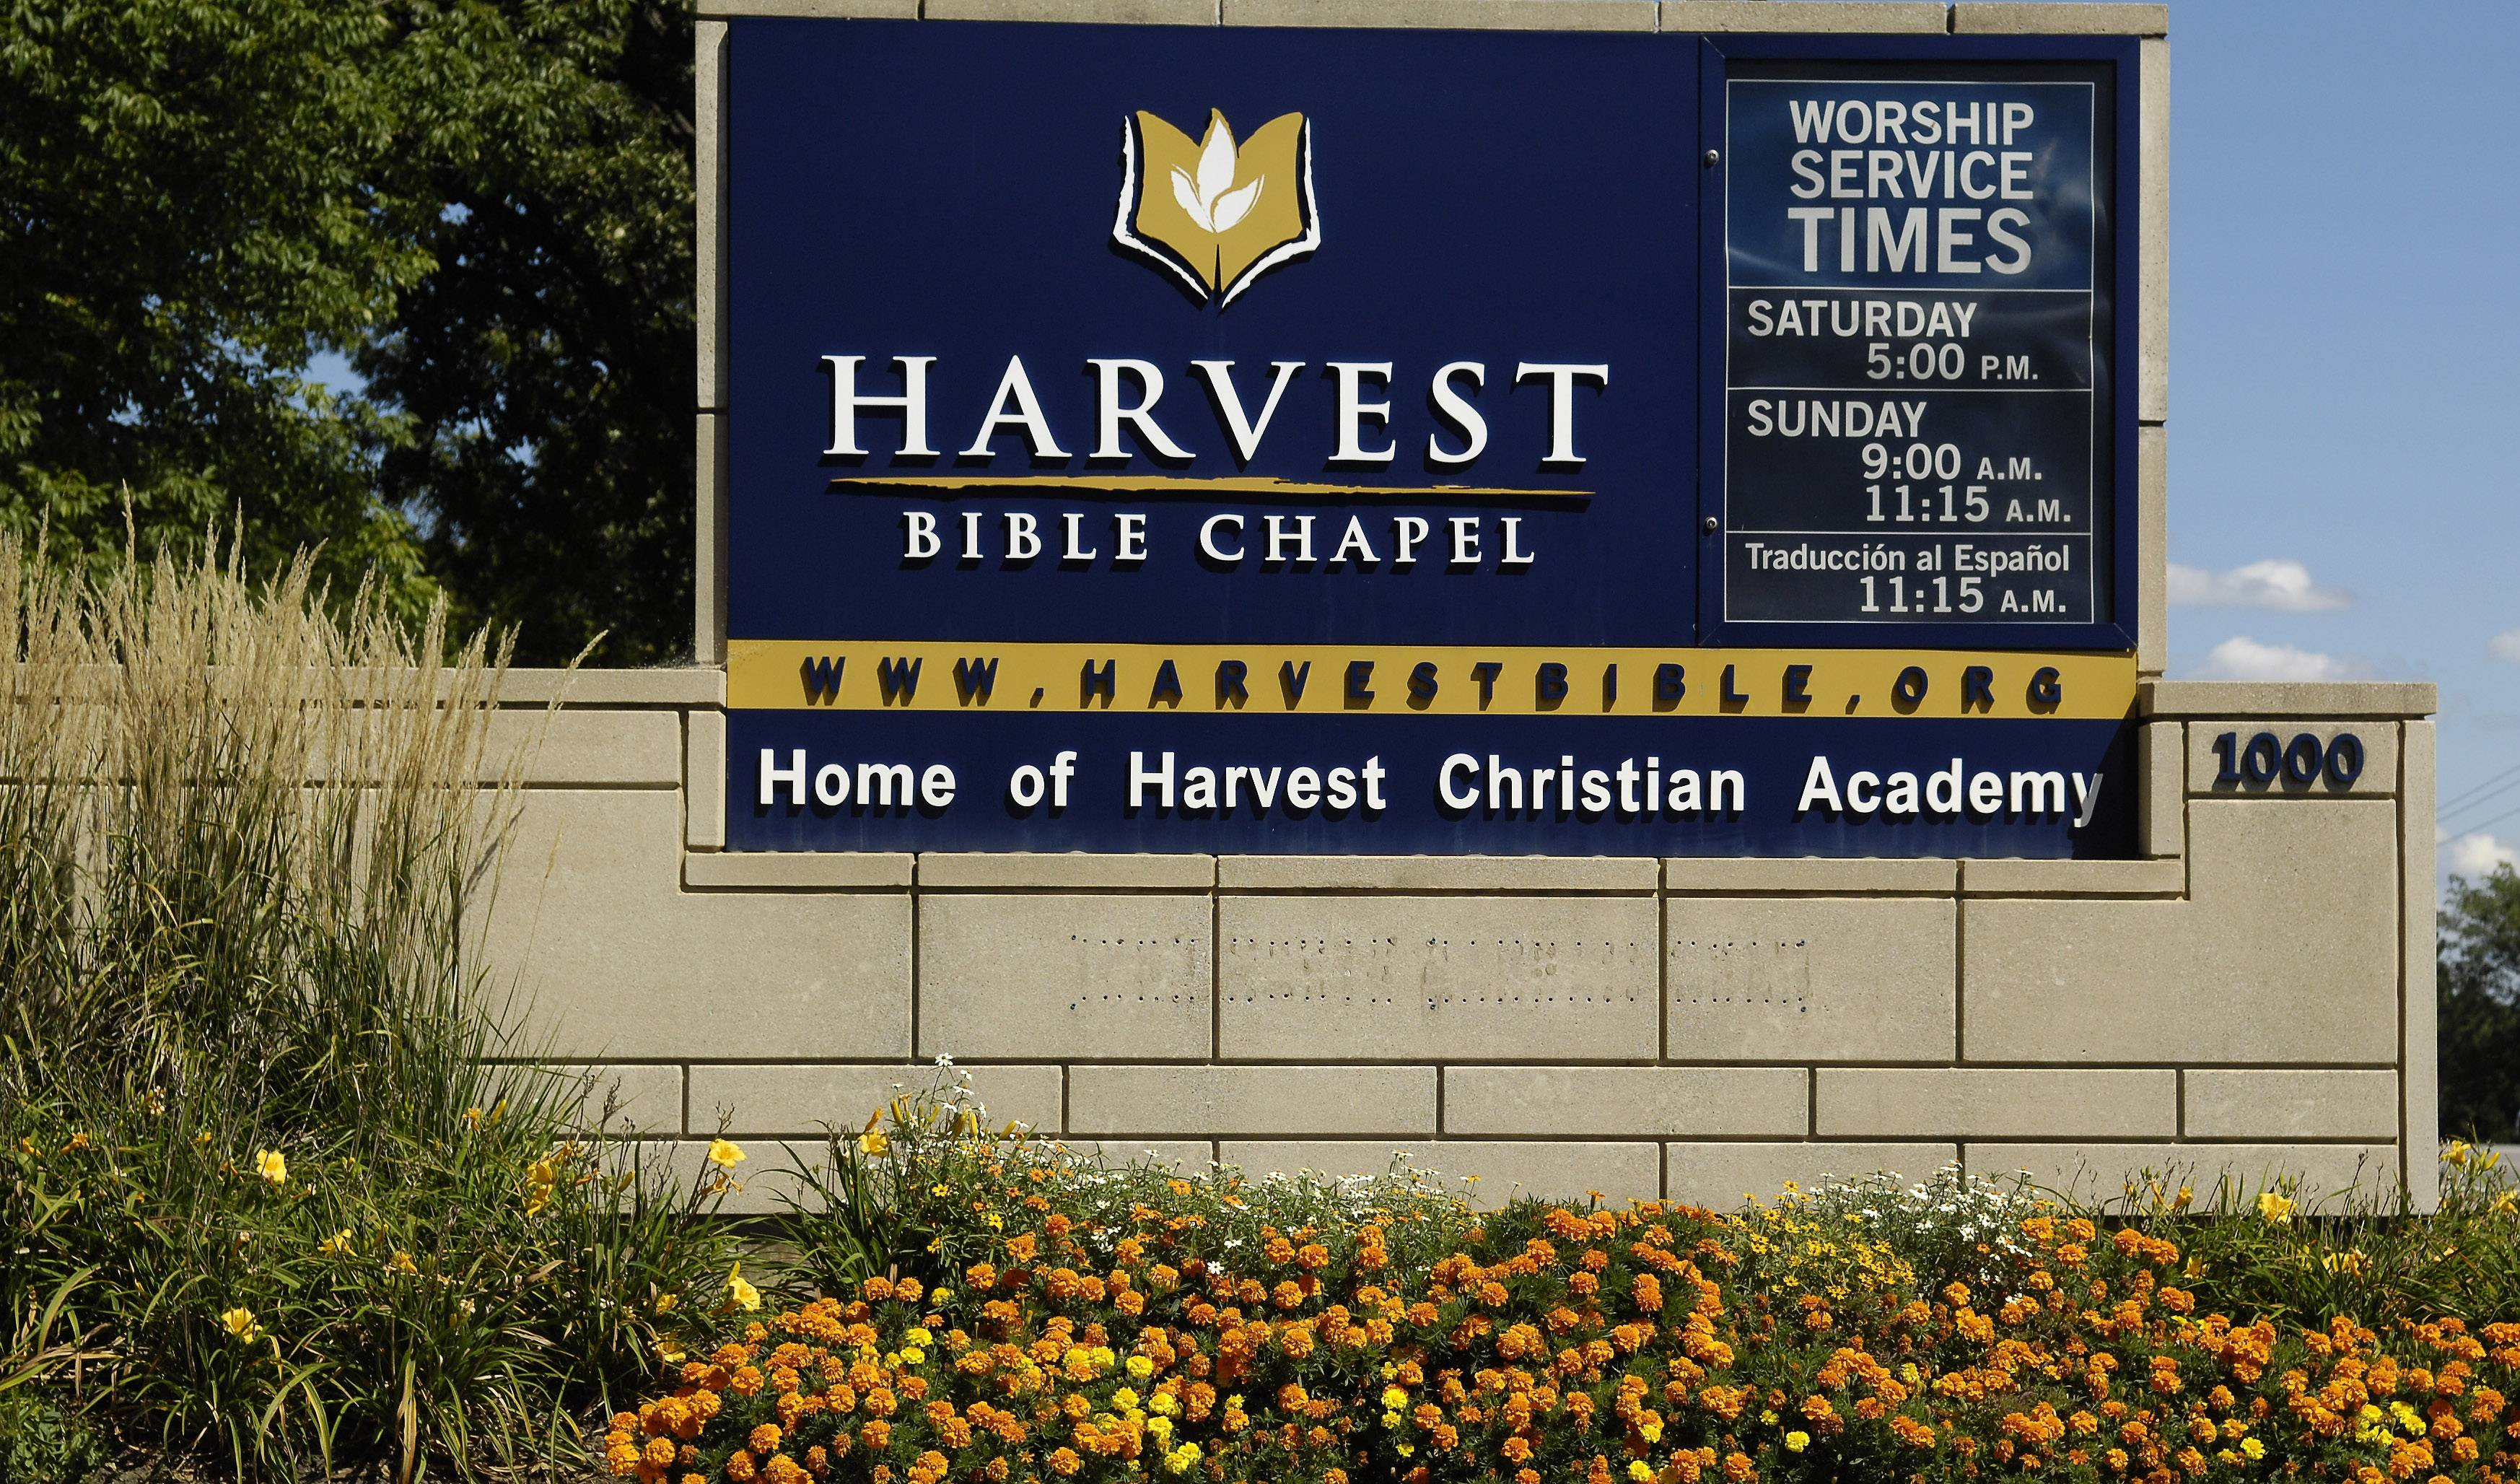 The Harvest Bible Chapel in Elgin.